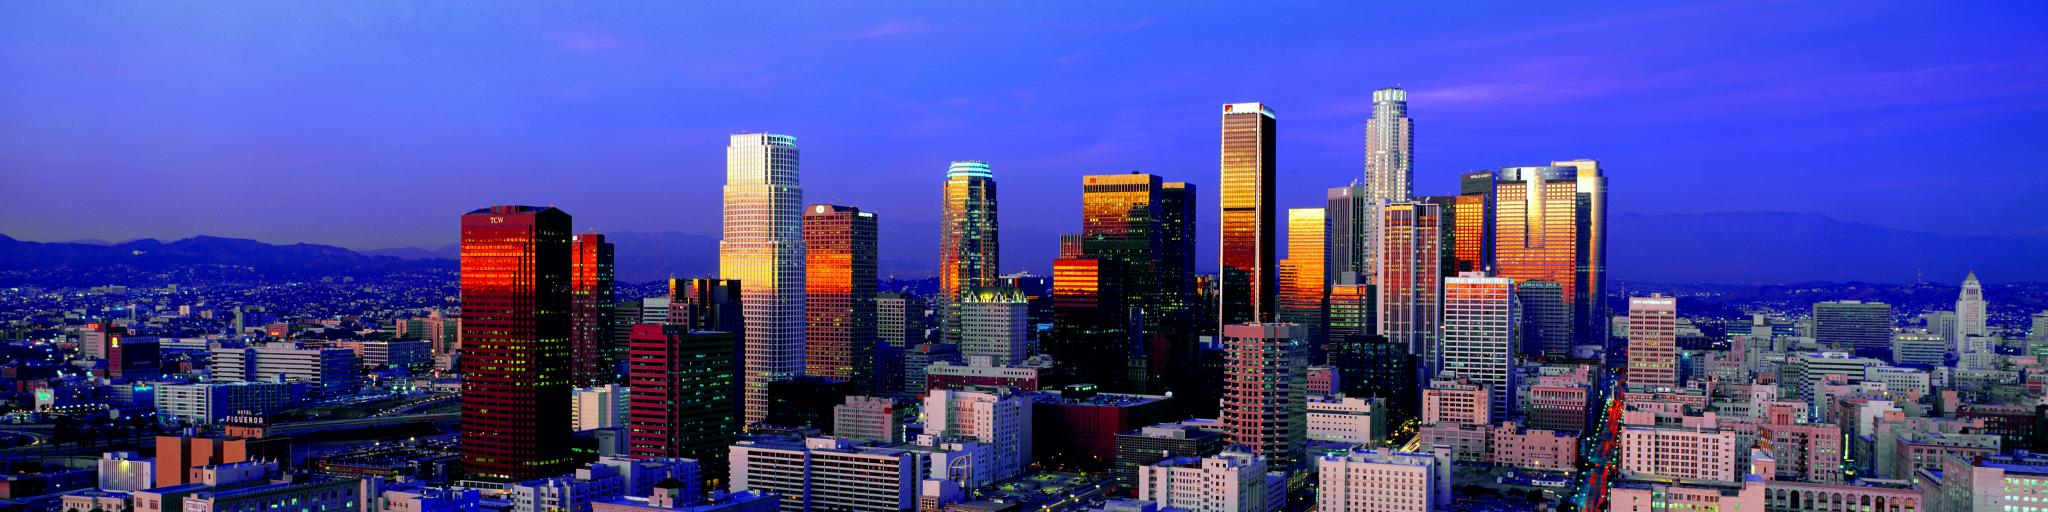 A beautiful view of the skyline with the light from the sunrise reflecting the buildings of Los Angeles